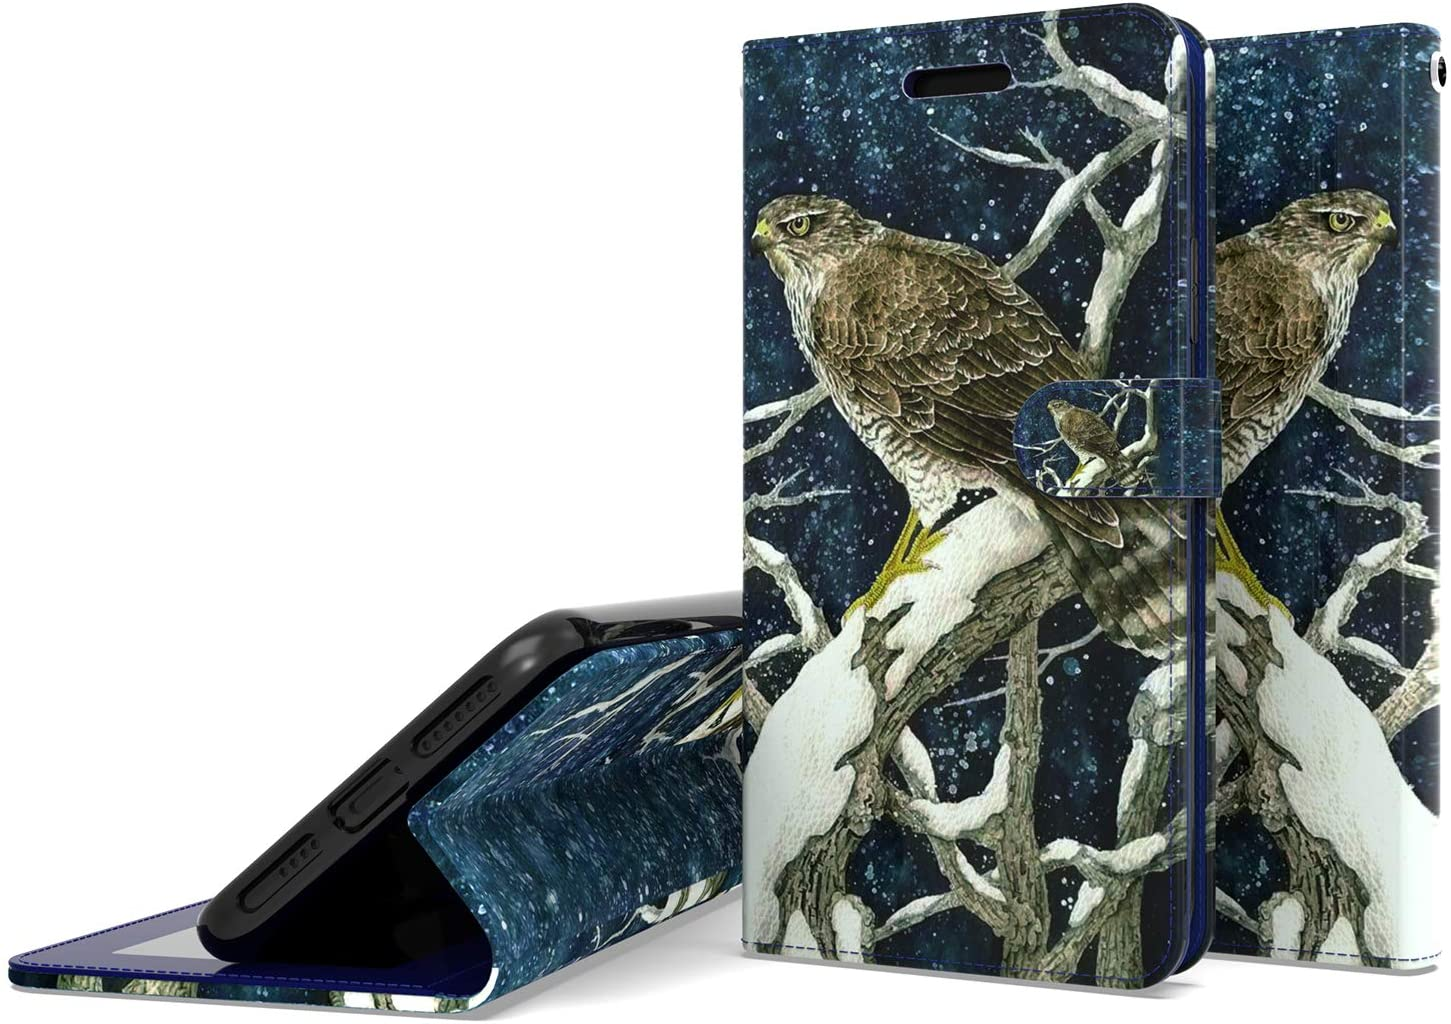 UNC Pro for Samsung Galaxy A11 Wallet Pouch Case, Luxury PU Leather Case Credit Card Slots Holder with Folio Flip, Stand Feature with Wrist Strap, Eagle Hunting Style